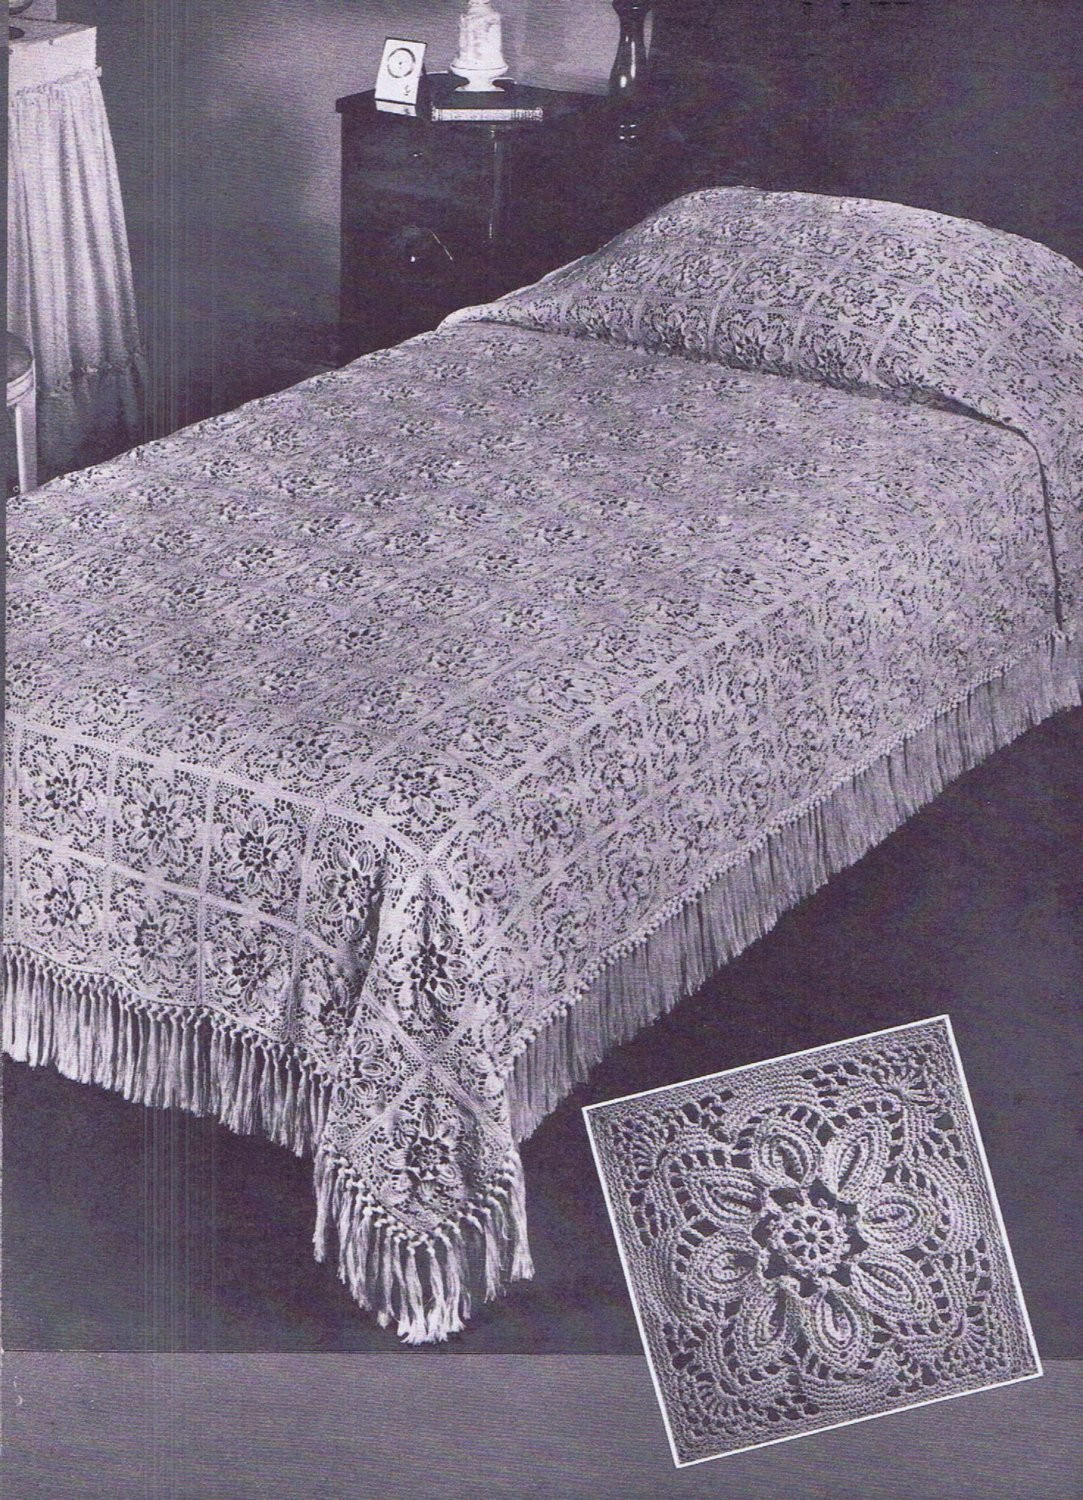 Crochet Bedspread Patterns Awesome Vintage Crochet Pattern In Pdf File for the Puritan Bedspread Of Top 48 Photos Crochet Bedspread Patterns